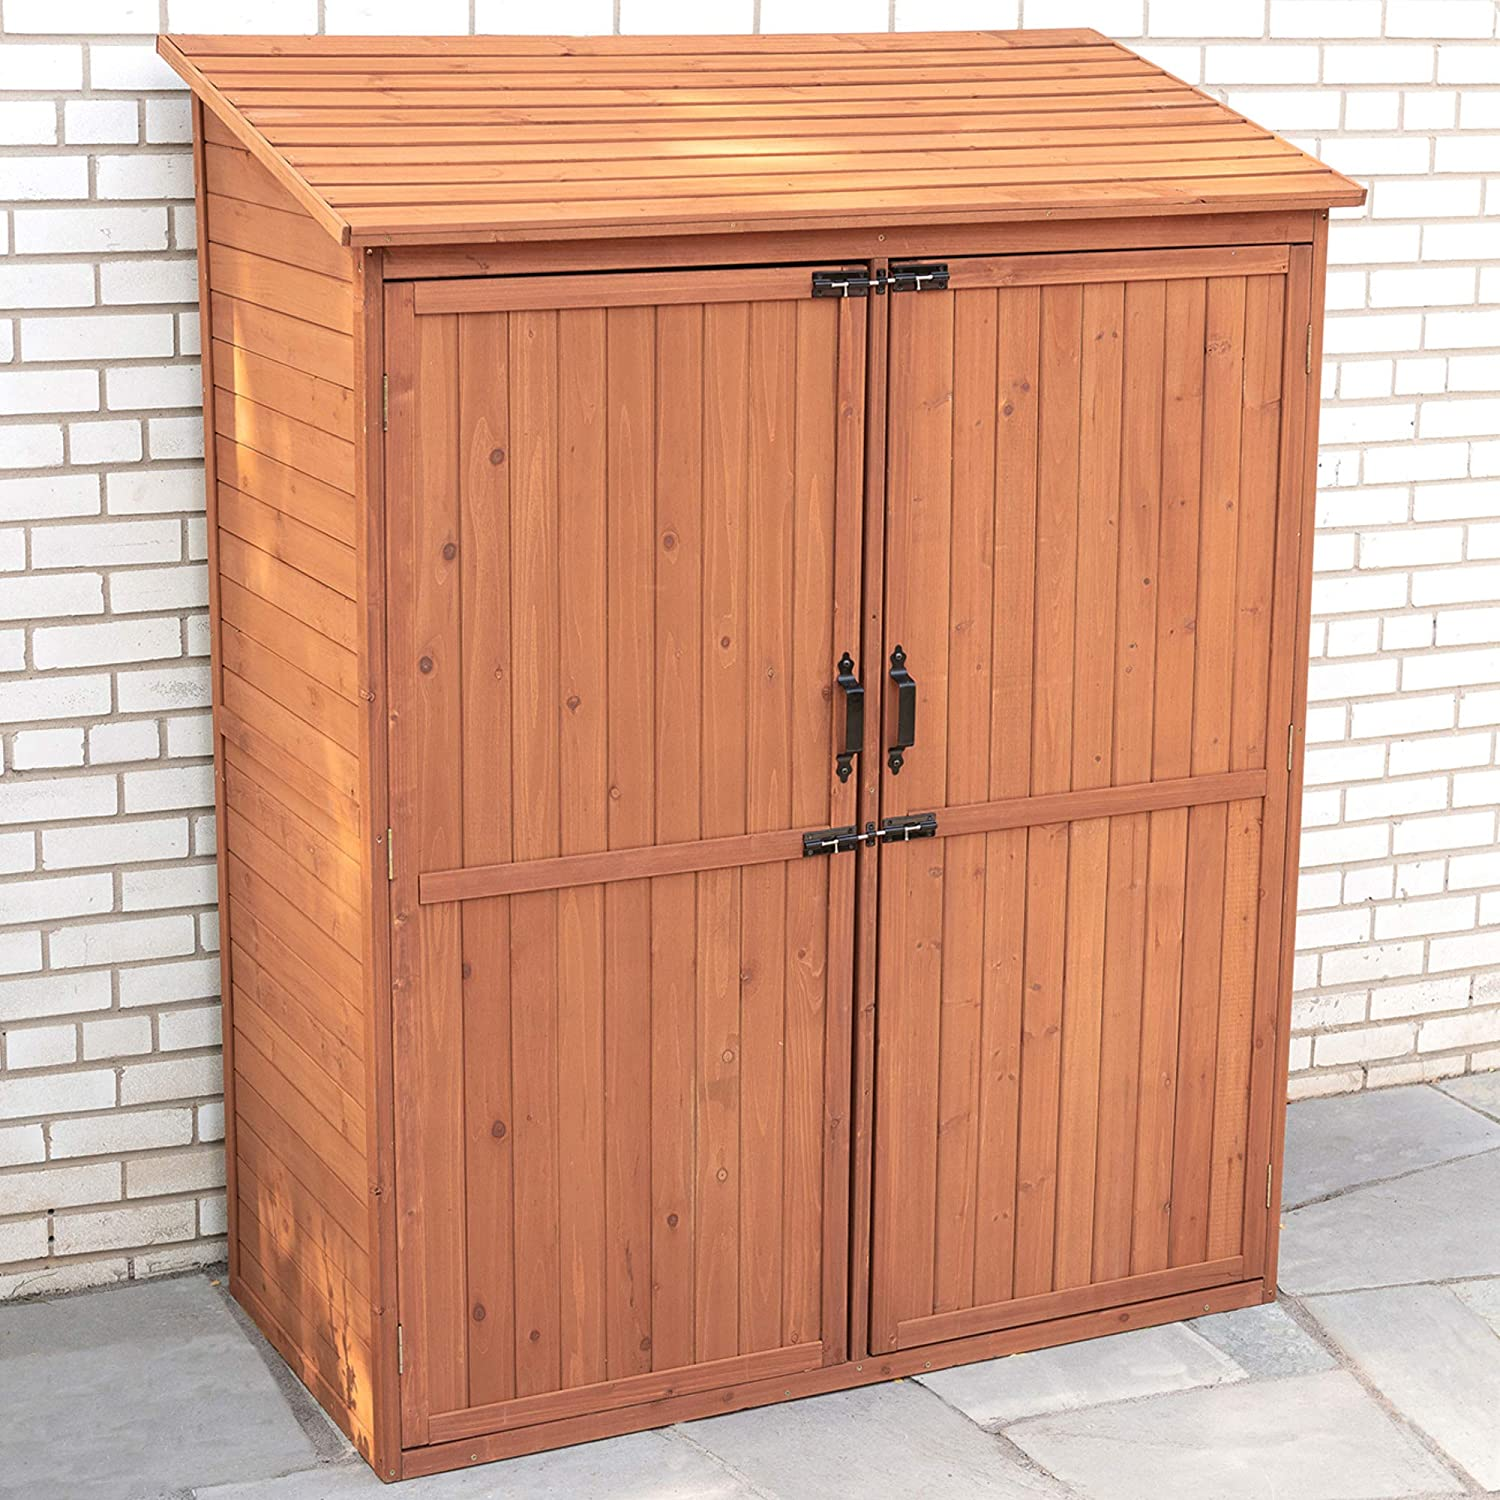 Leisure Season SPC5187 35% OFF Storage Shed with Out Pull - Brown Sale SALE% OFF Crates